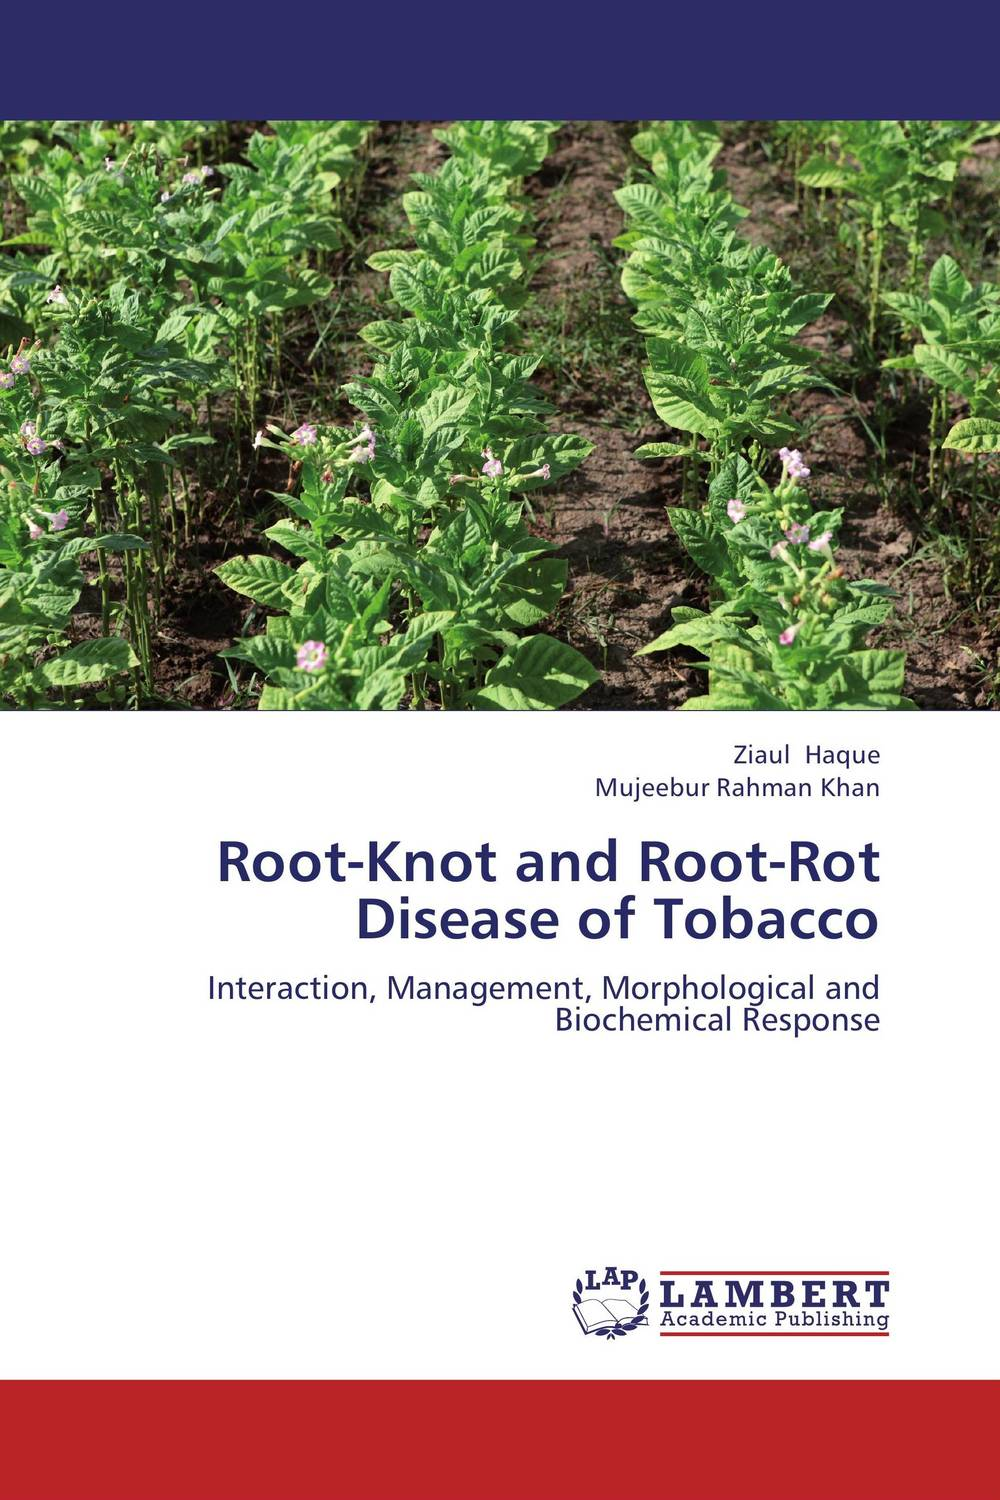 Root-Knot and Root-Rot Disease of Tobacco the teeth with root canal students to practice root canal preparation and filling actually